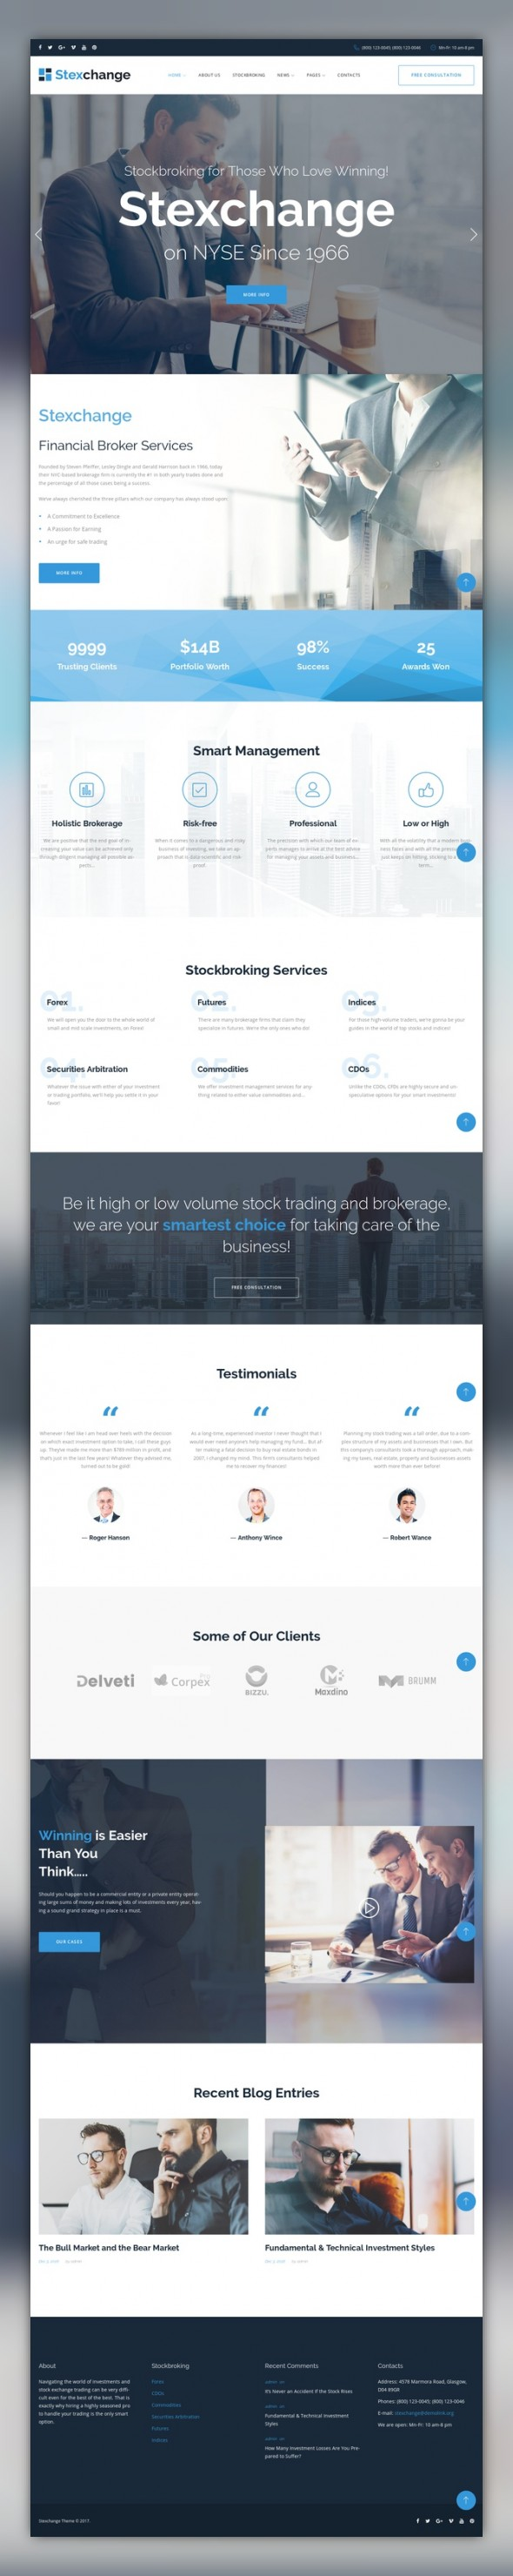 Stexchange Financial Broker Services Responsive Wordpress Theme